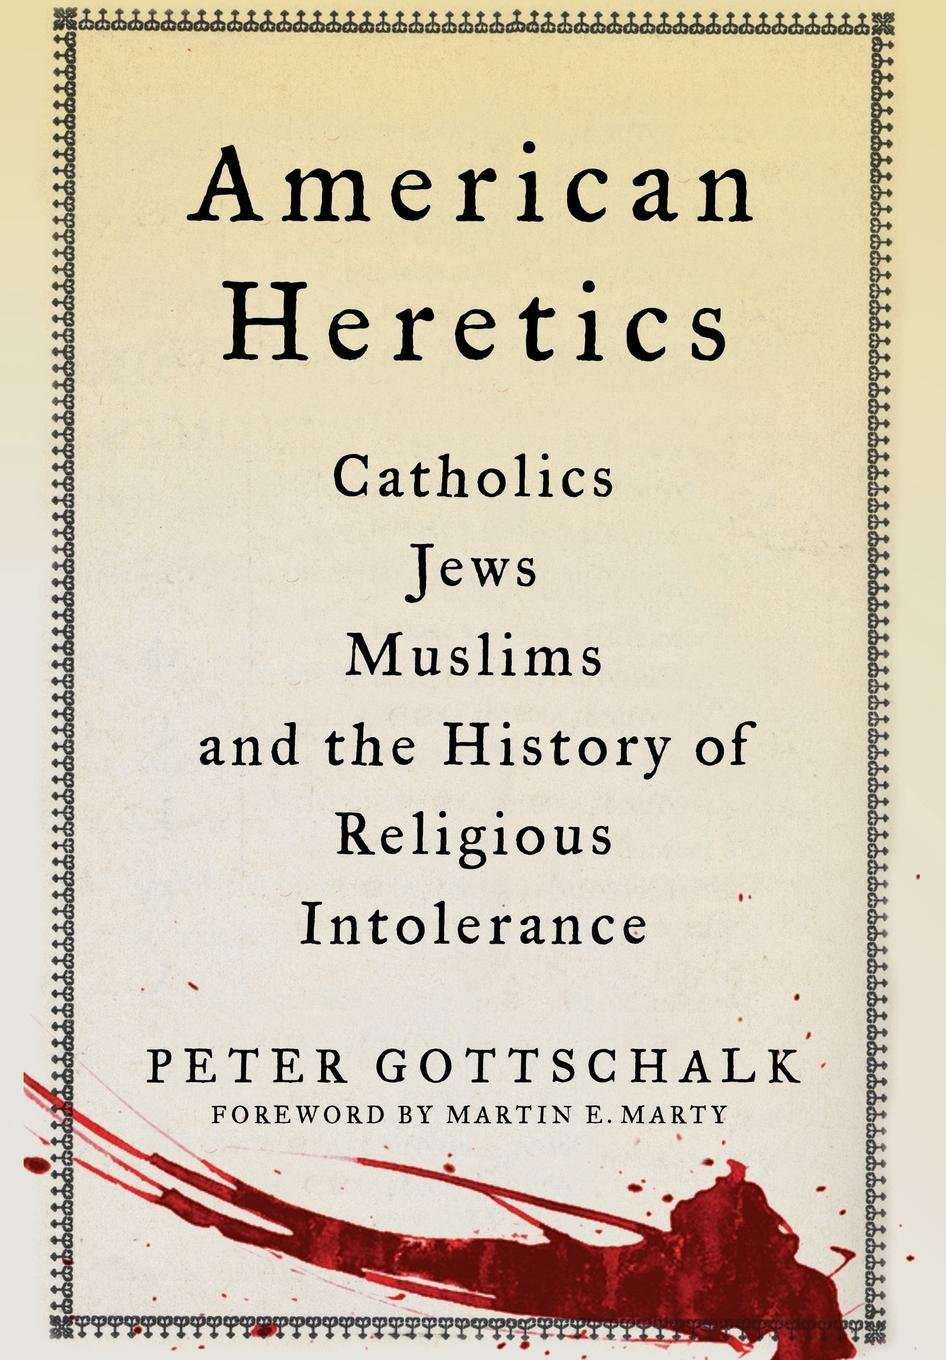 American Heretics: Catholics, Jews, Muslims, and the History of Religious Intolerance pdf epub